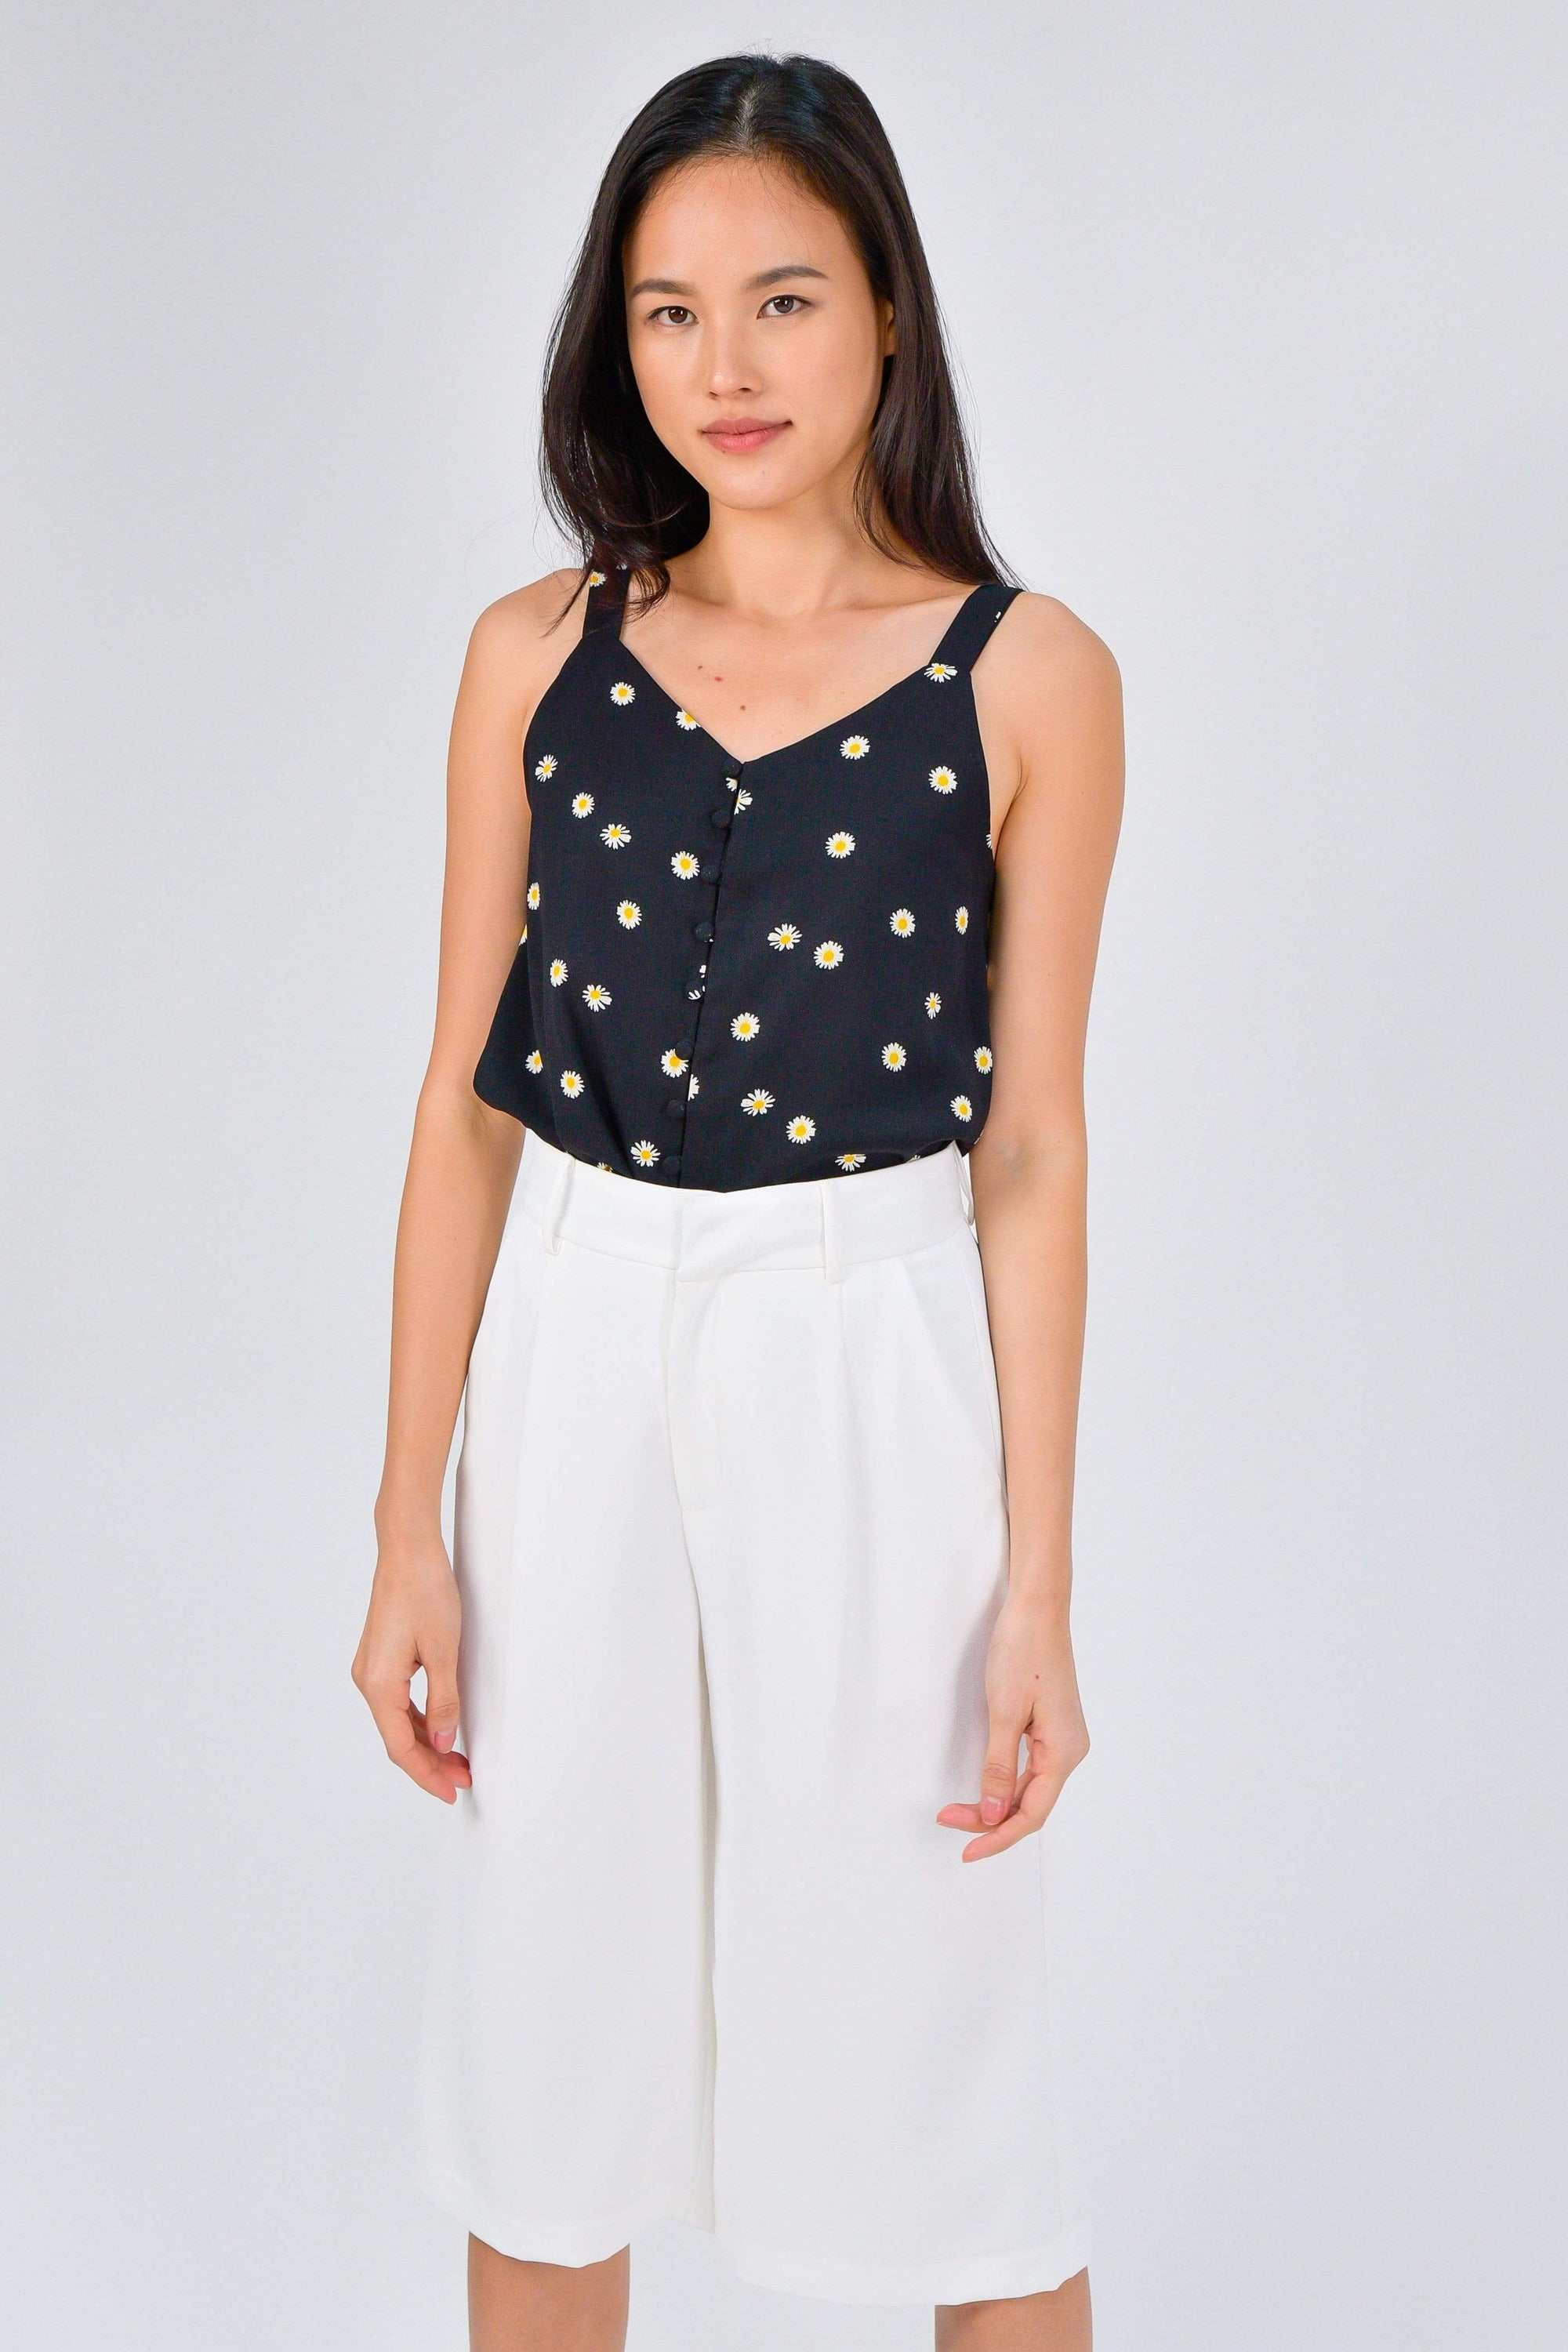 BROOKE BLACK DAISY BUTTON TOP